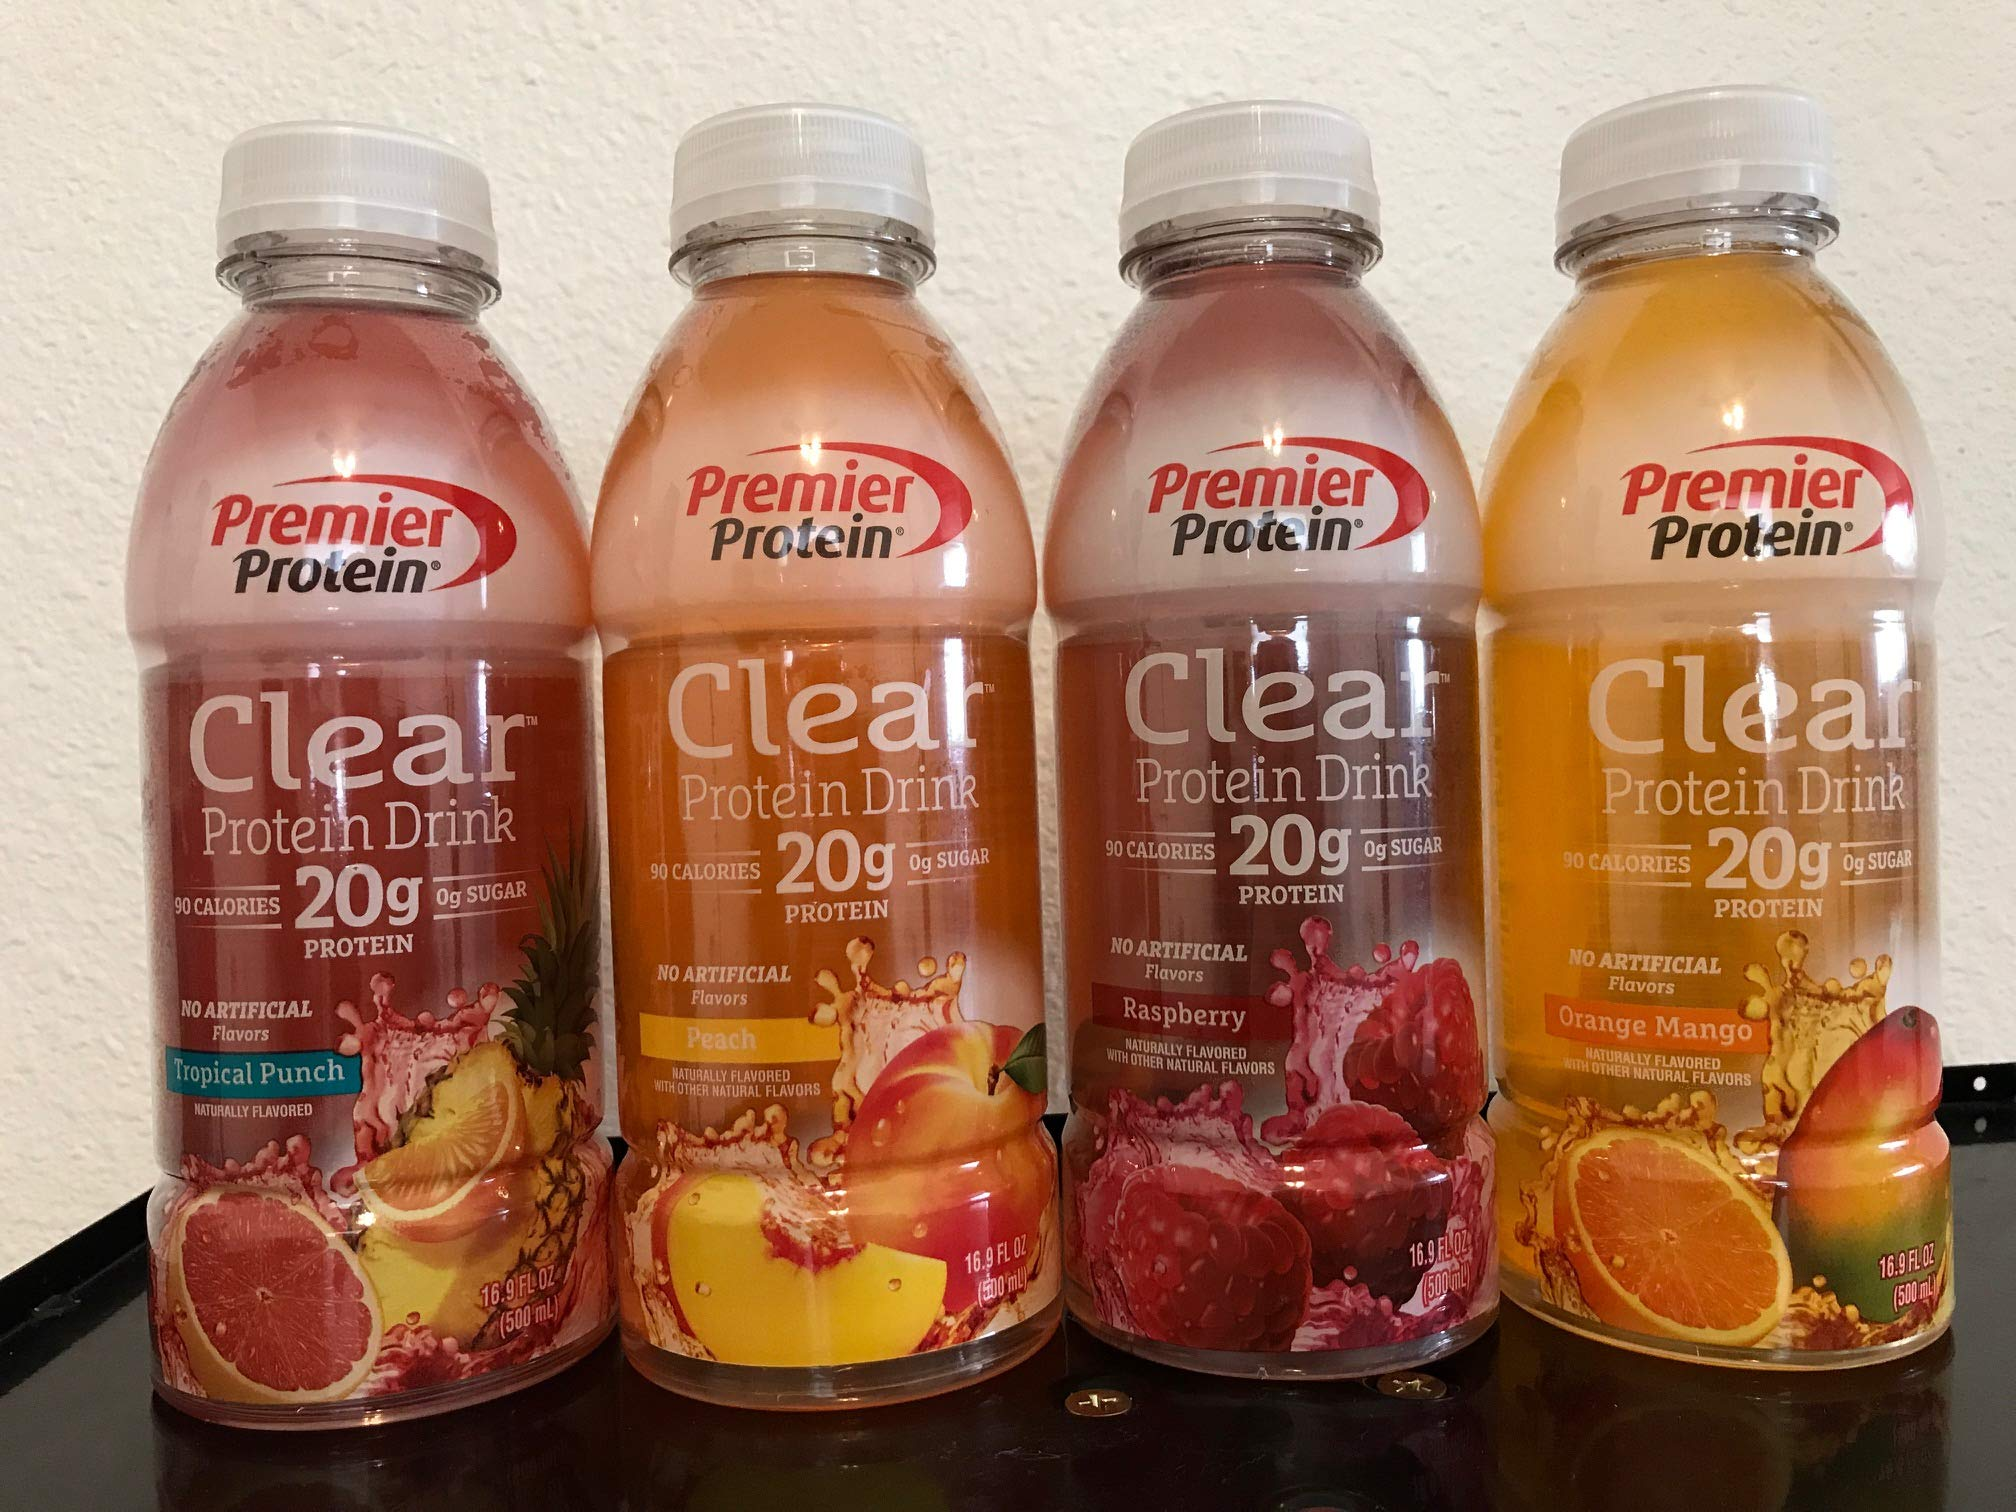 Premier Protein Clear Protein Drink Variety Pack, Tropical Punch, Raspberry, Peach, Orange Mango, 16.9 fl oz Bottle, 1 Bottle Each Flavor, Total 4 Flavors by Premier Protein Clear Drinks